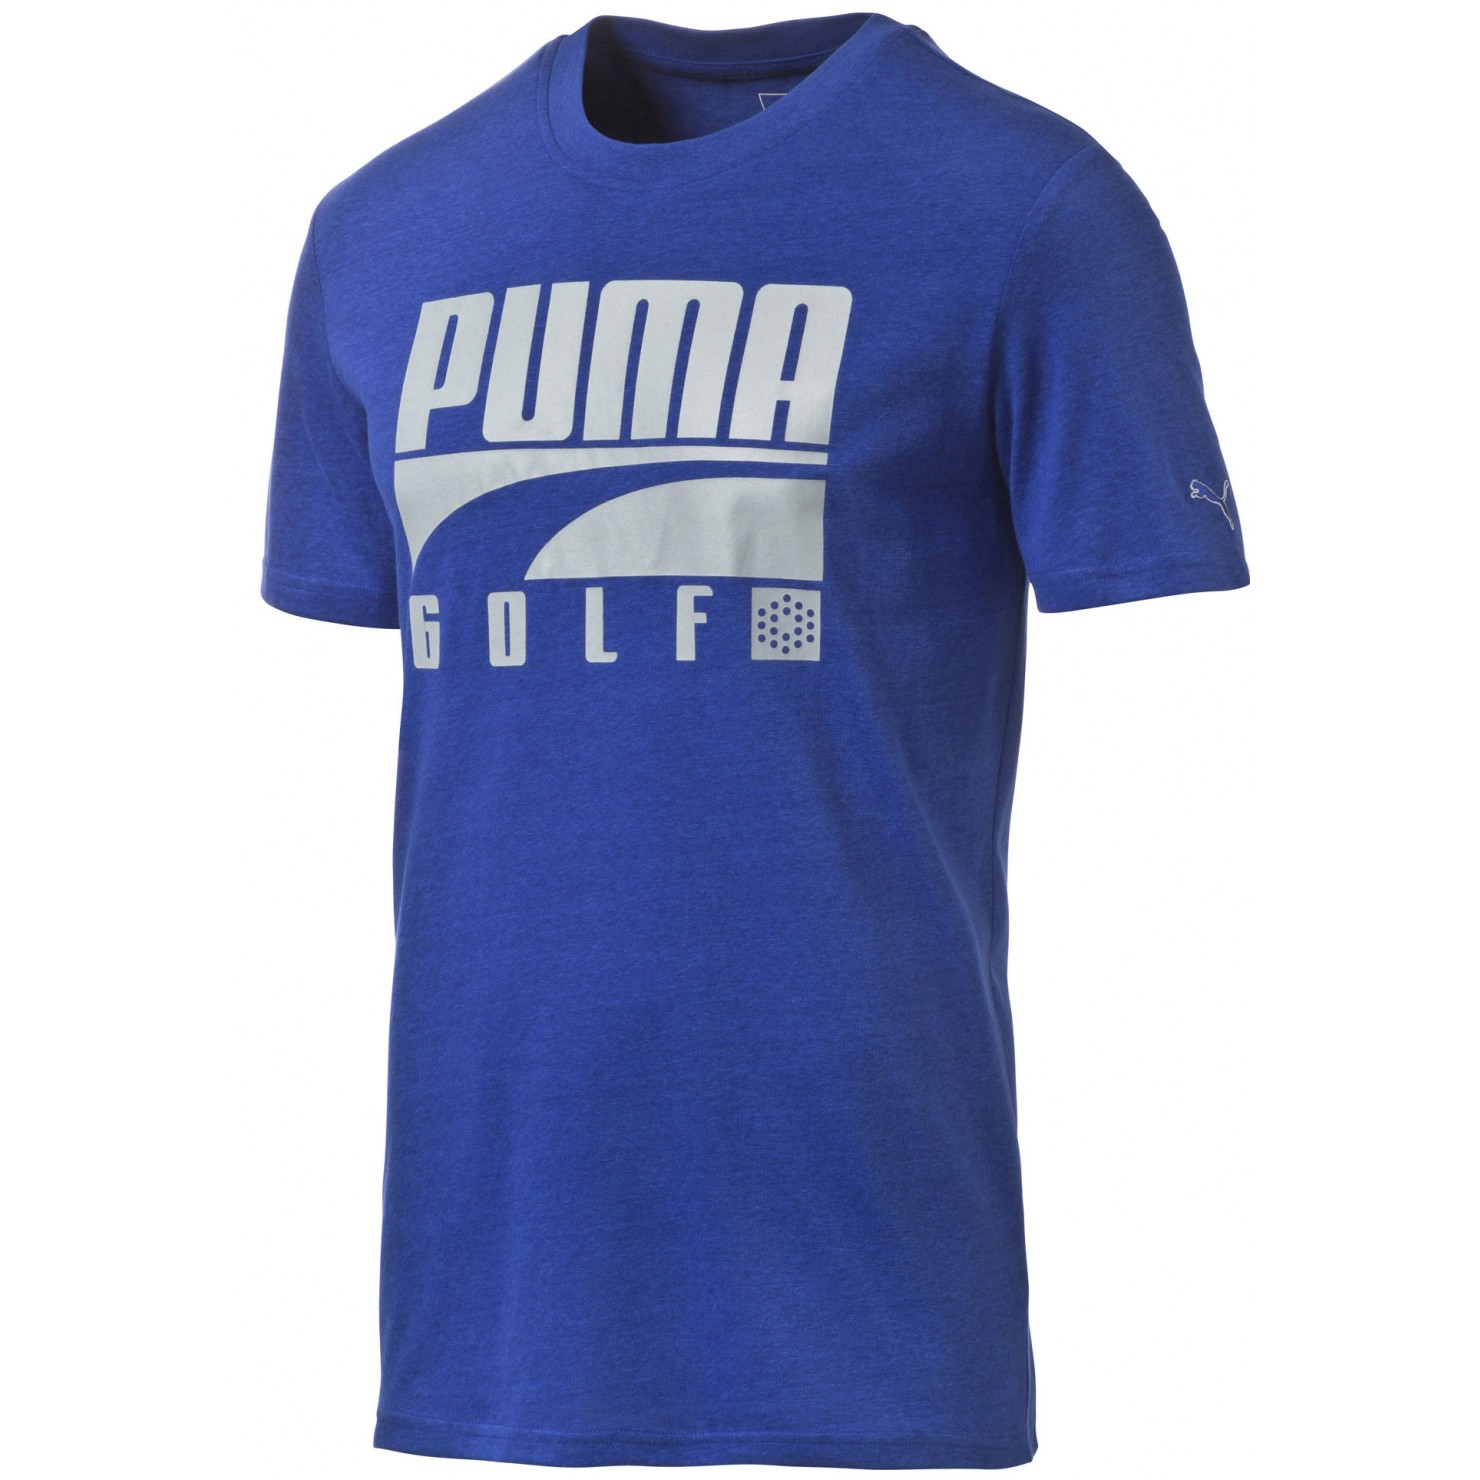 Puma formstripe t shirt mens golf shirt 571449 new 2016 for Sell shirts on your website